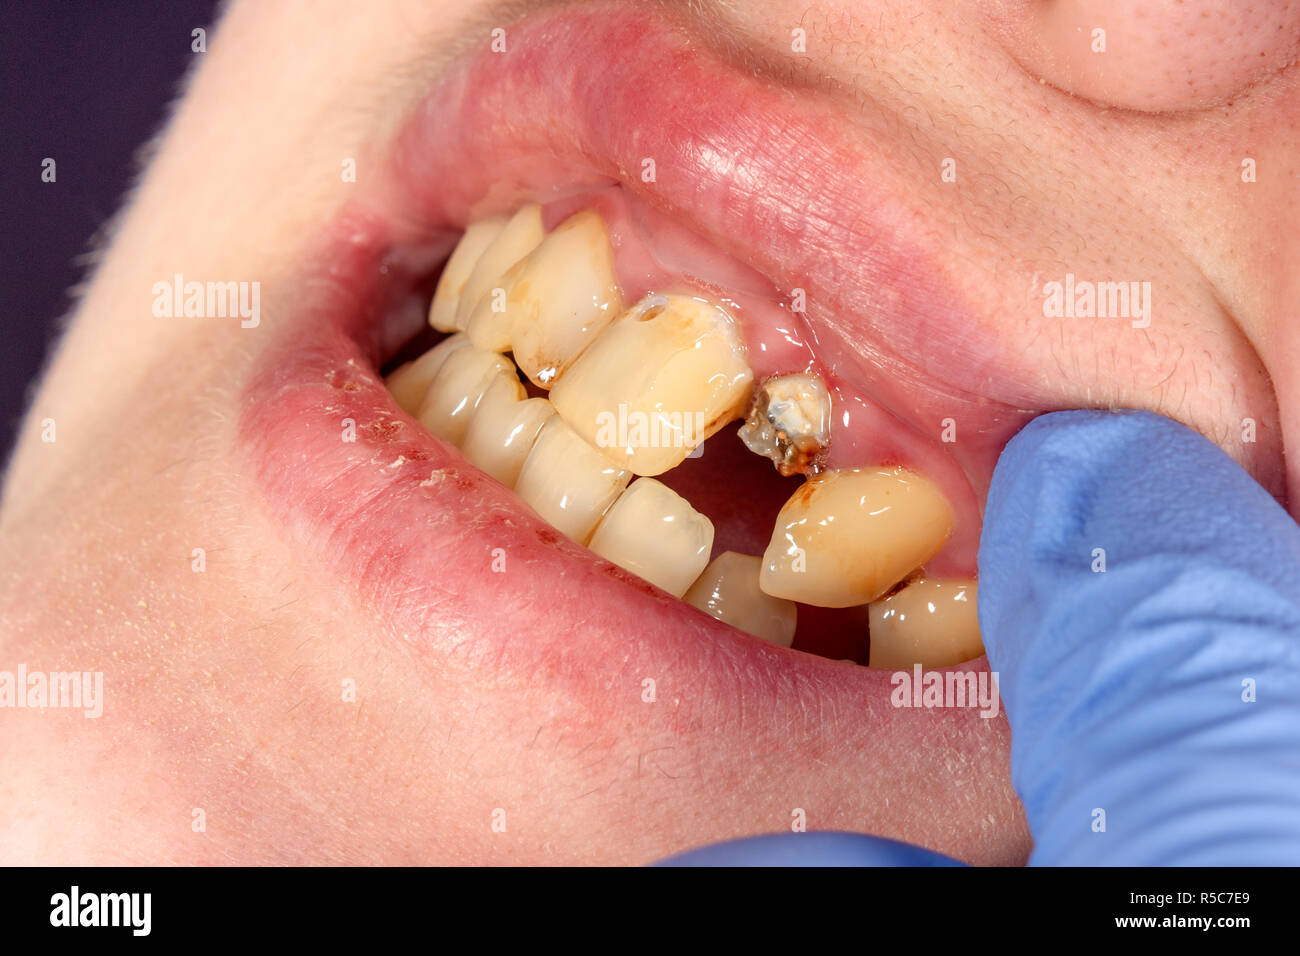 Dental pin close-up, preparation of the tooth for the formulation of the ceramic crown. The concept of prosthetics in dentistry - Stock Image